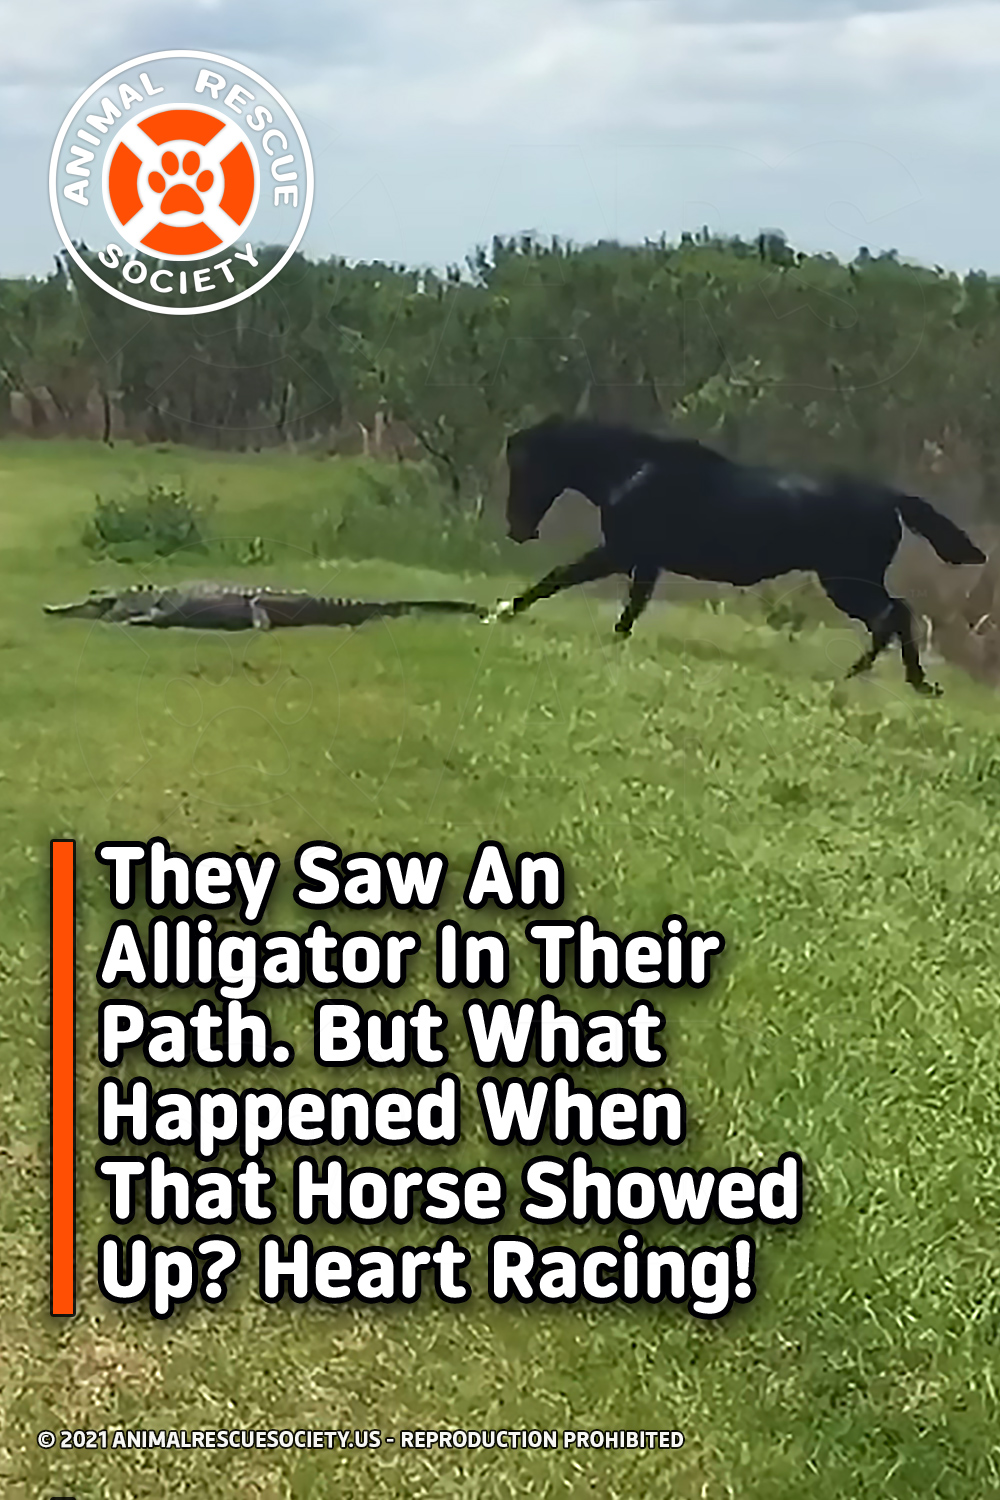 They Saw An Alligator In Their Path. But What Happened When That Horse Showed Up? Heart Racing!